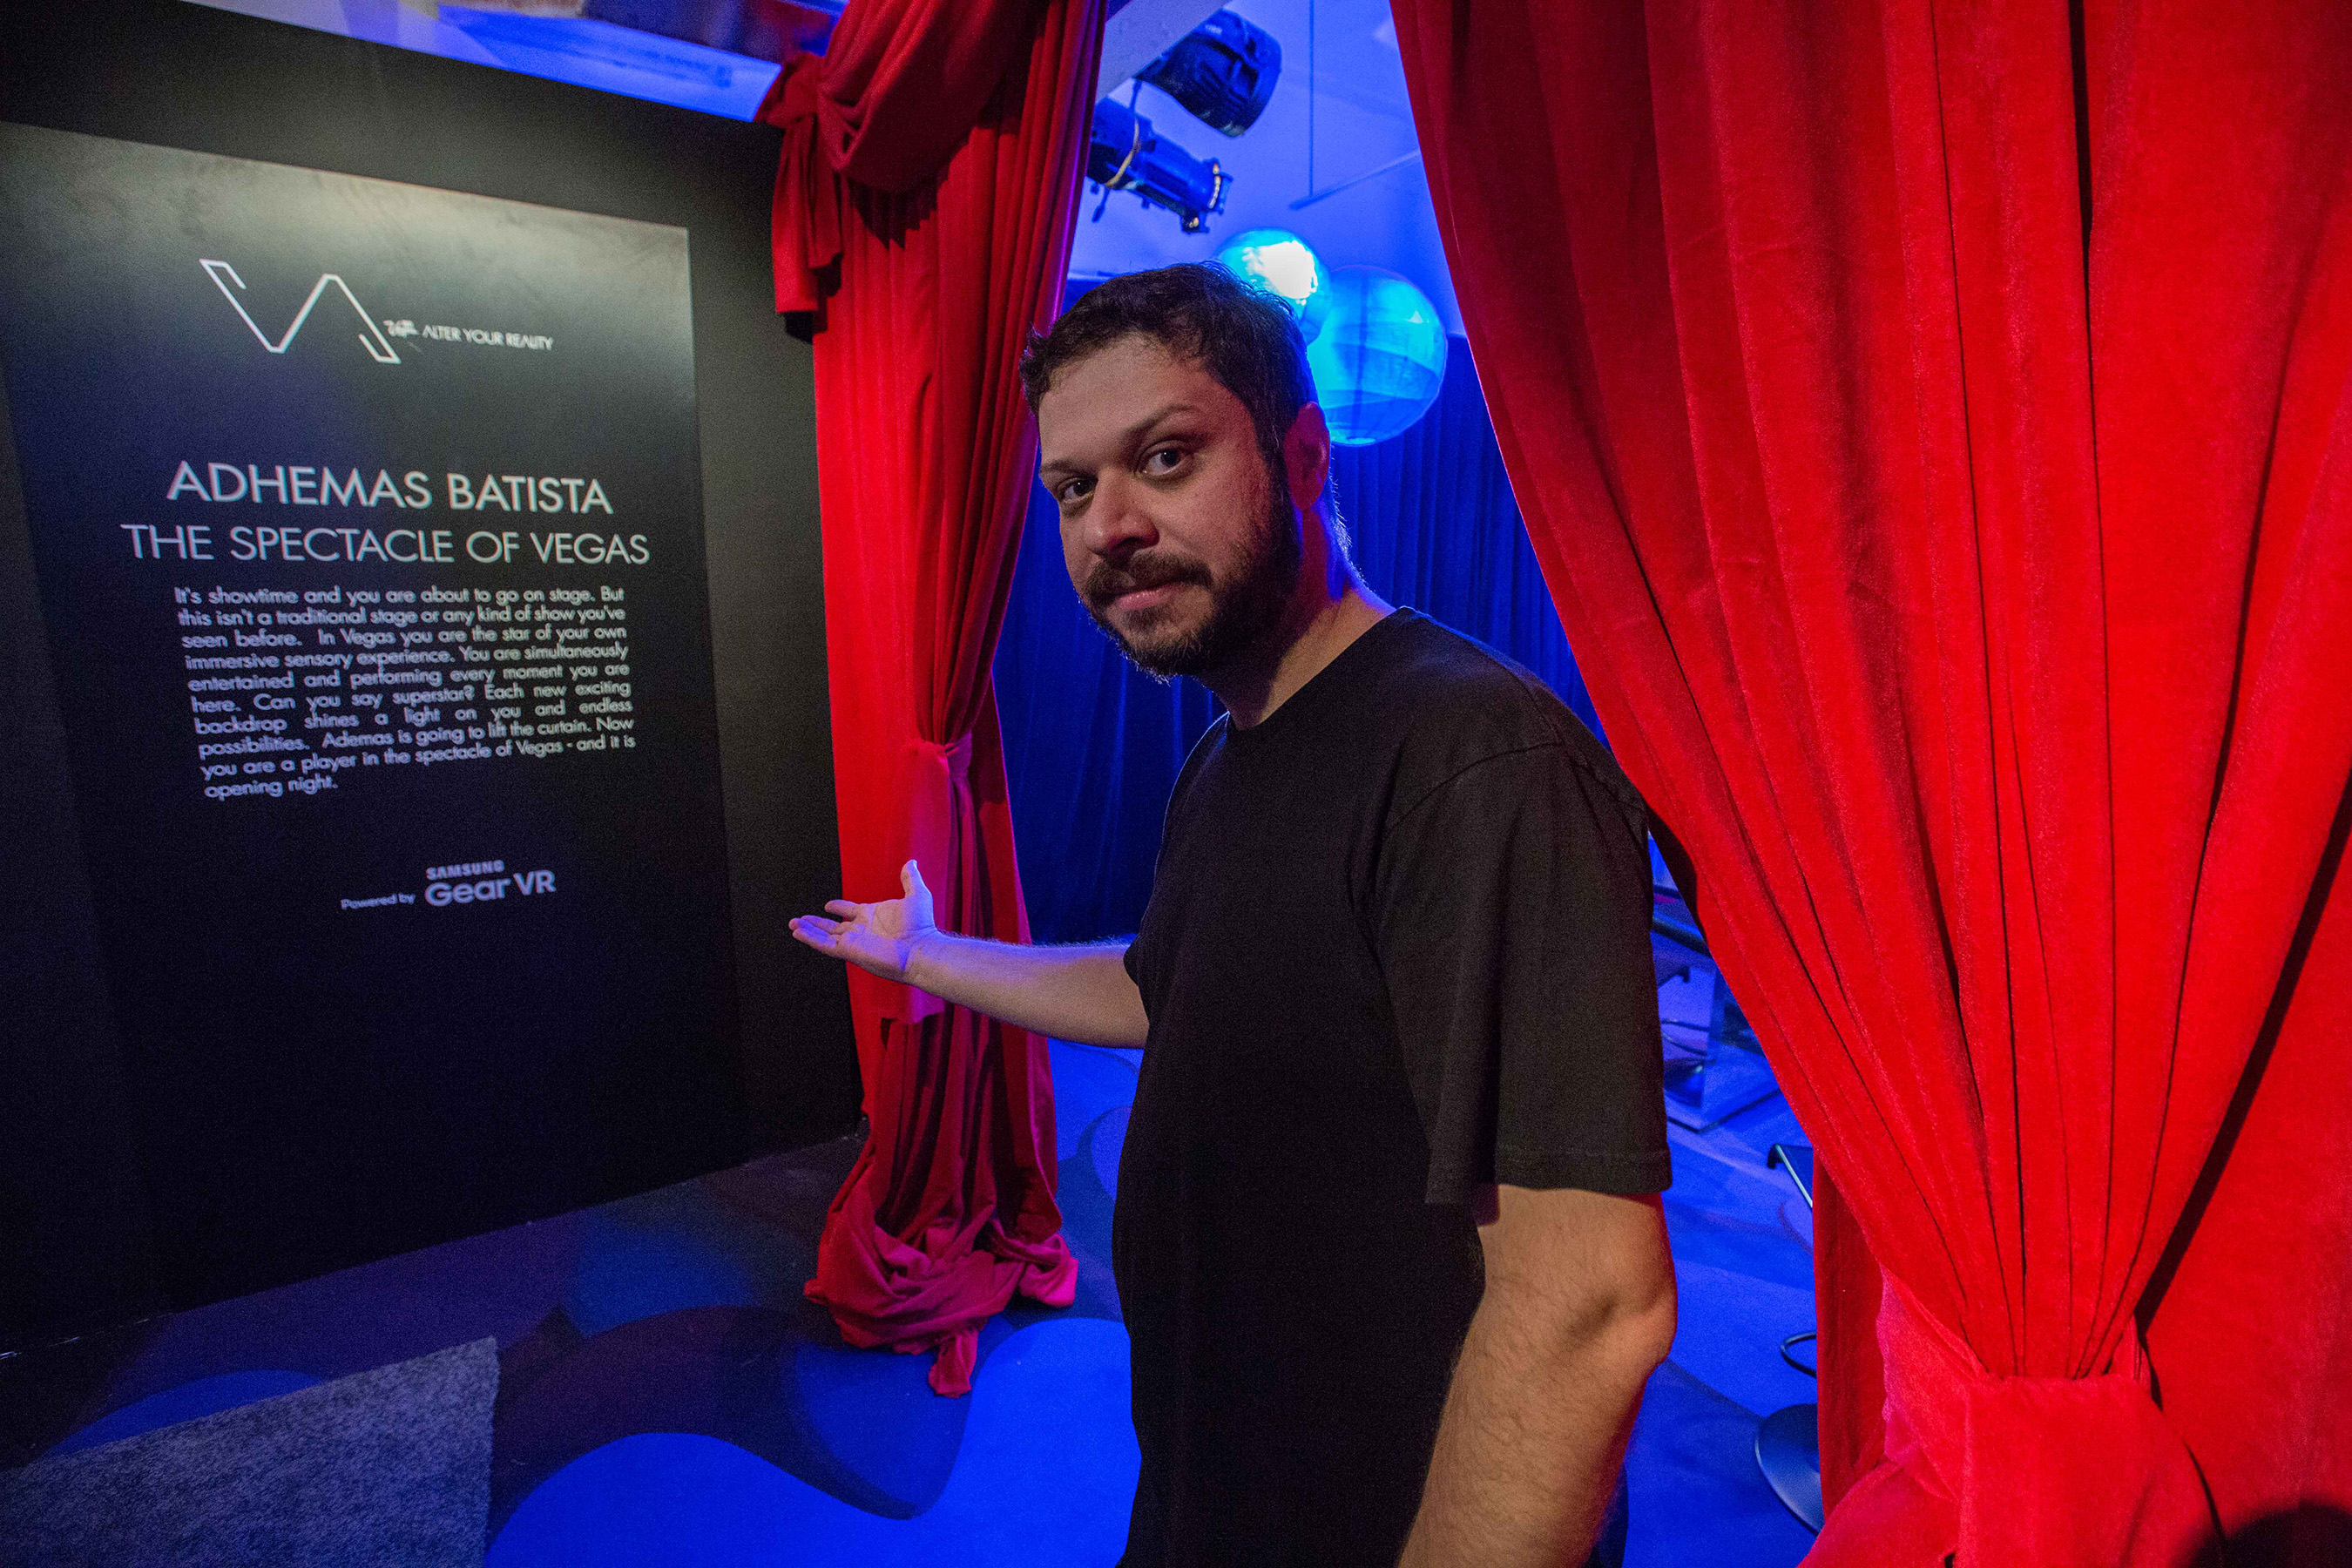 Adhemas Batista Unveils Work during Vegas Alter Your Reality Event